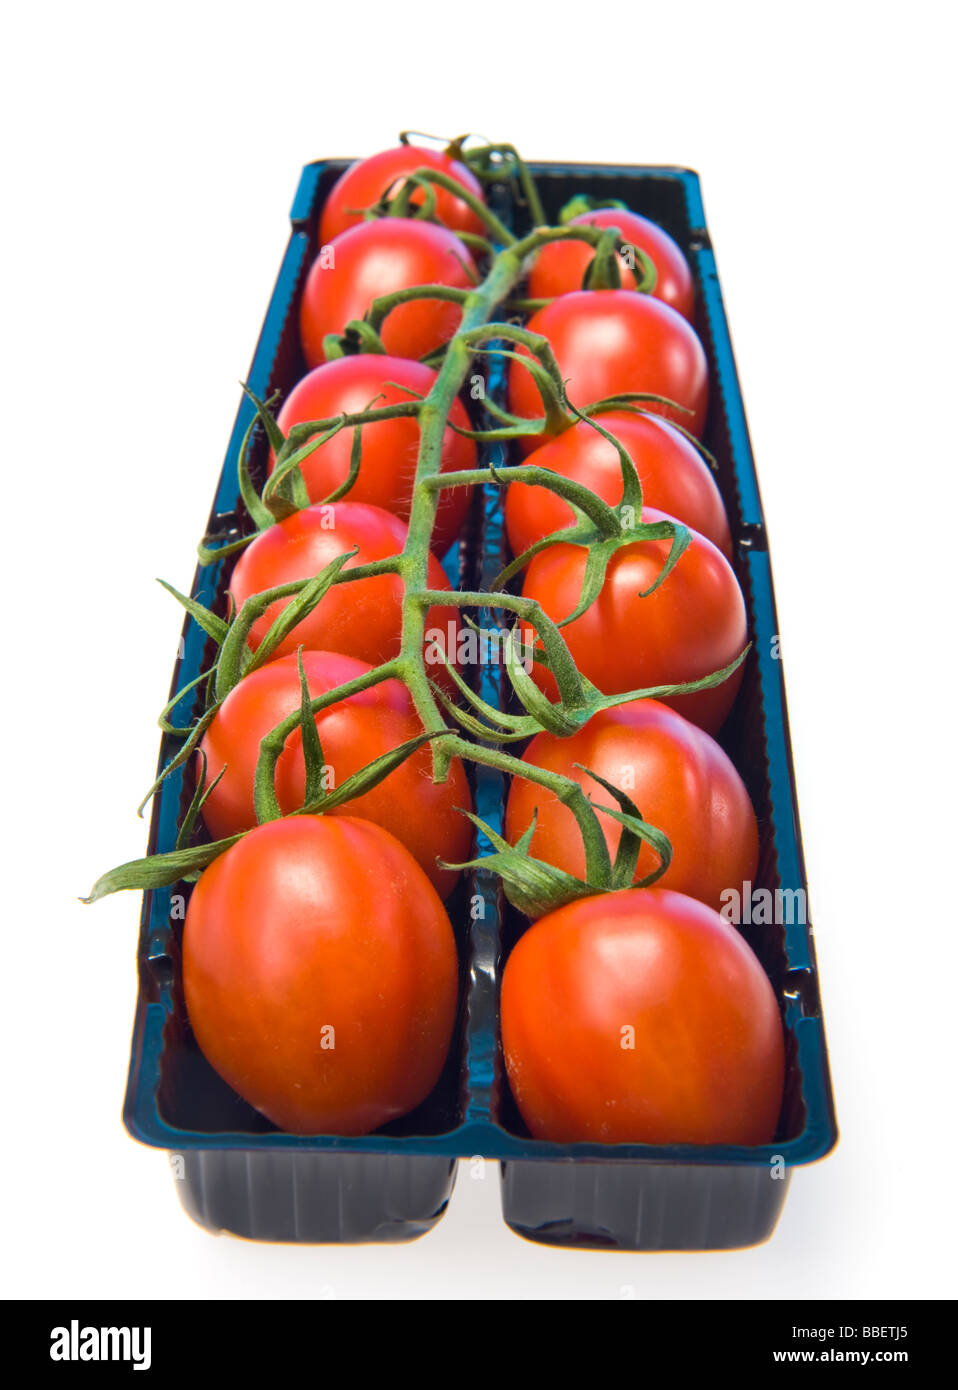 plum tomato panicle in black selling box red green black white background plumtomatoes tast tasty healthy health - Stock Image